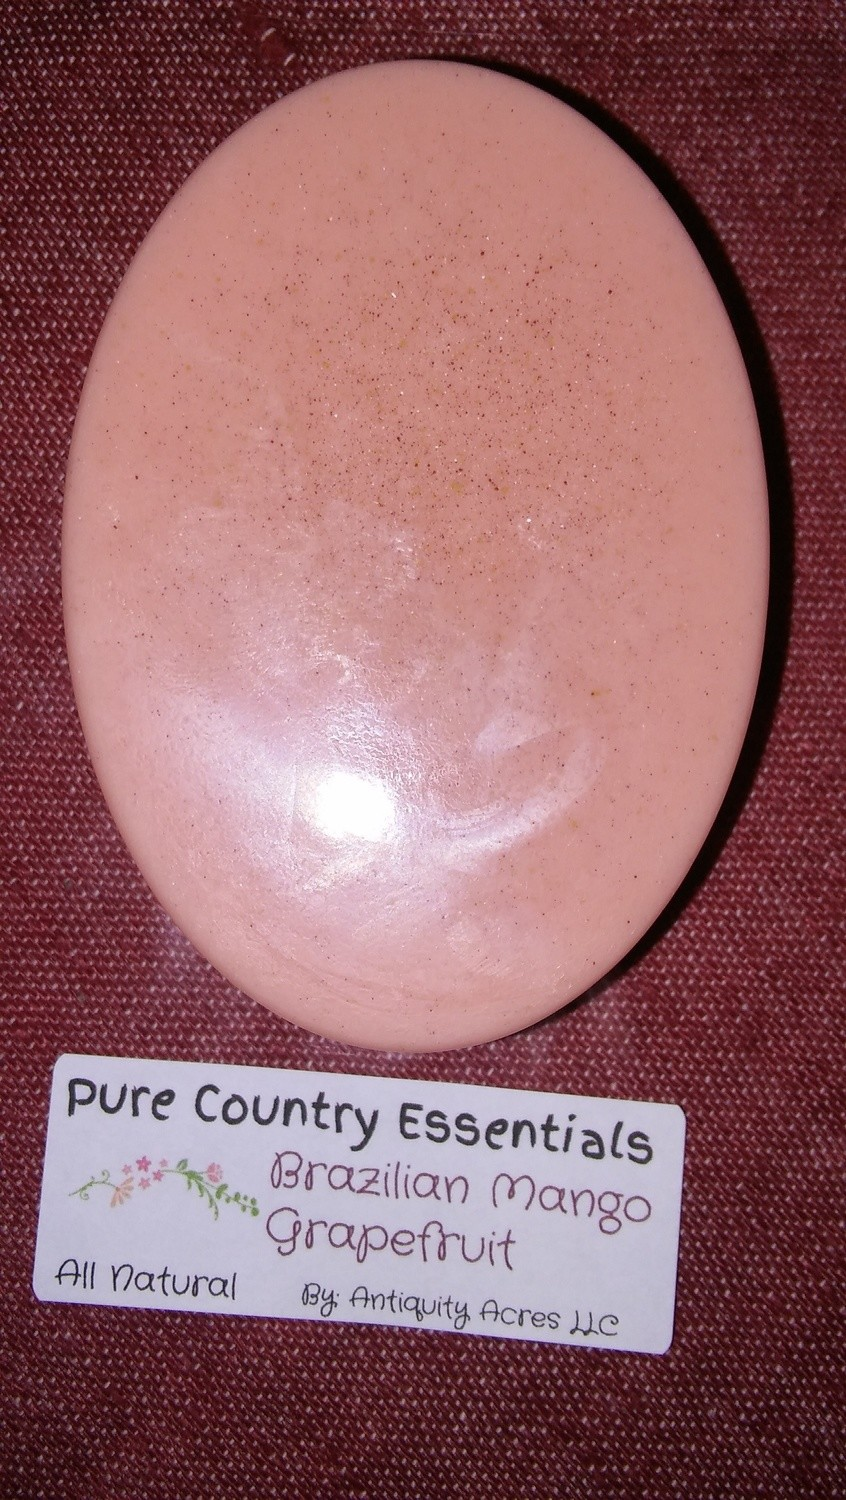 Pure Country Essentials Soap, Castile All Natural Glycerin, Brazilian Mango & Grapefruit Fragrance, Oval